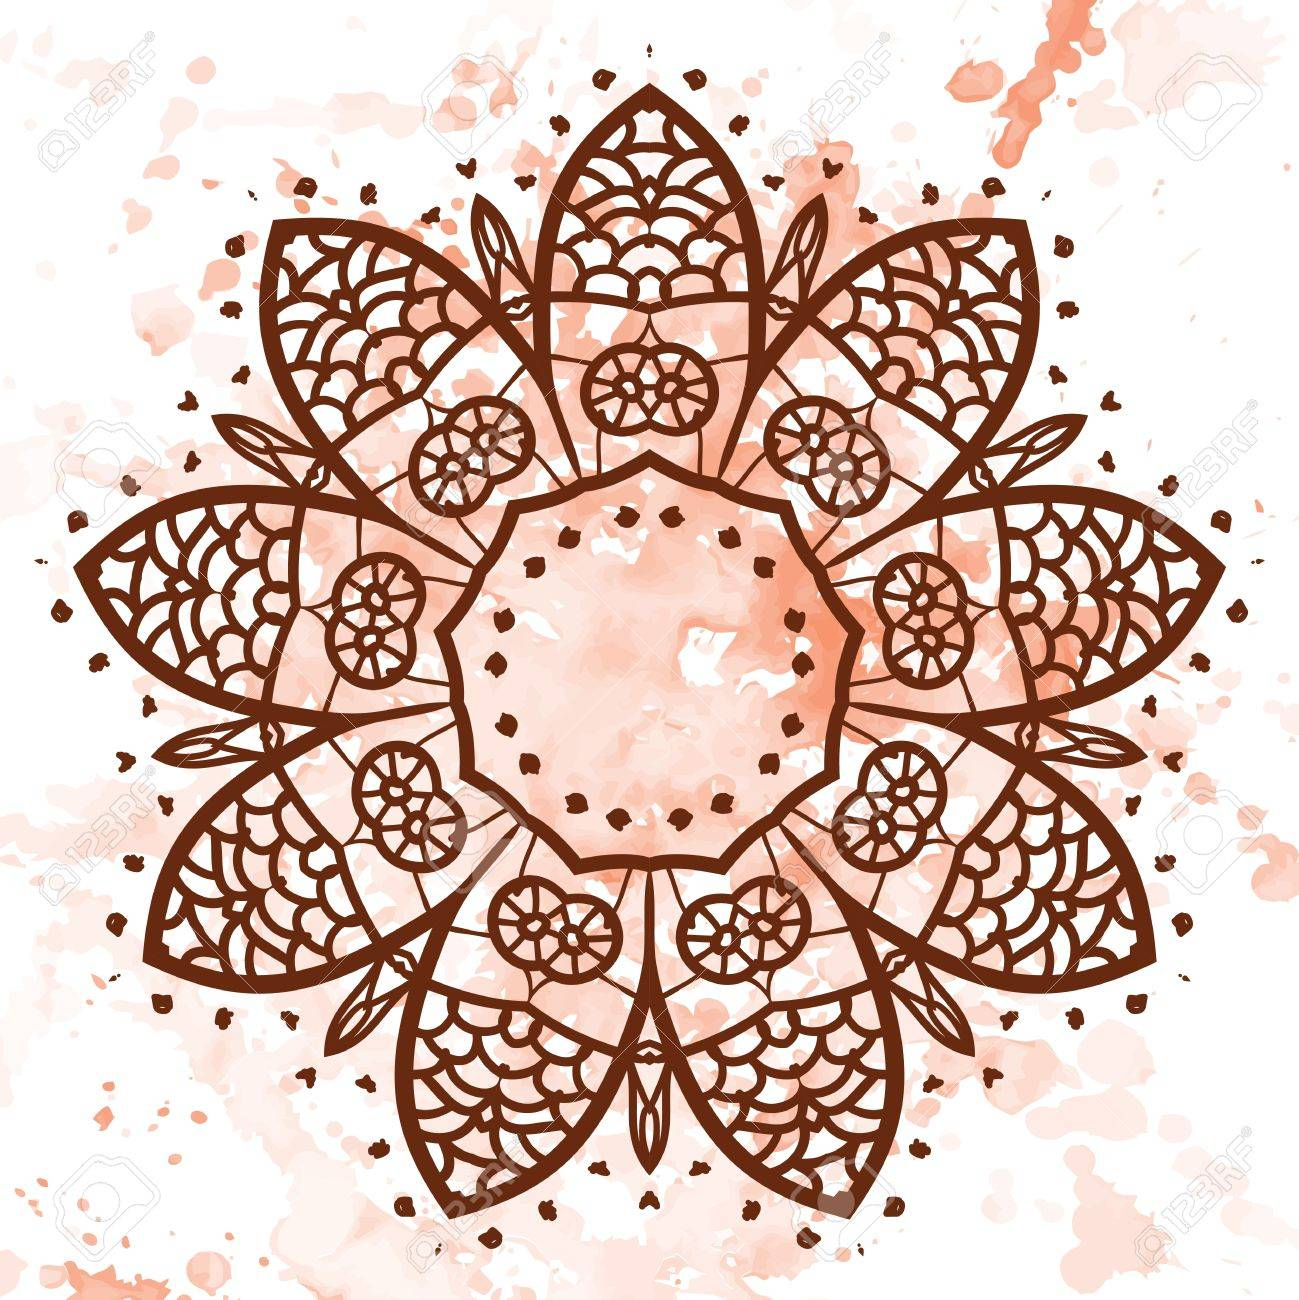 what is karma  Oriental mandala motif round lase pattern on the yellow background, like snowflake or mehndi paint of orange color  Ethnic backgrounds concept Stock Vector - 18500595